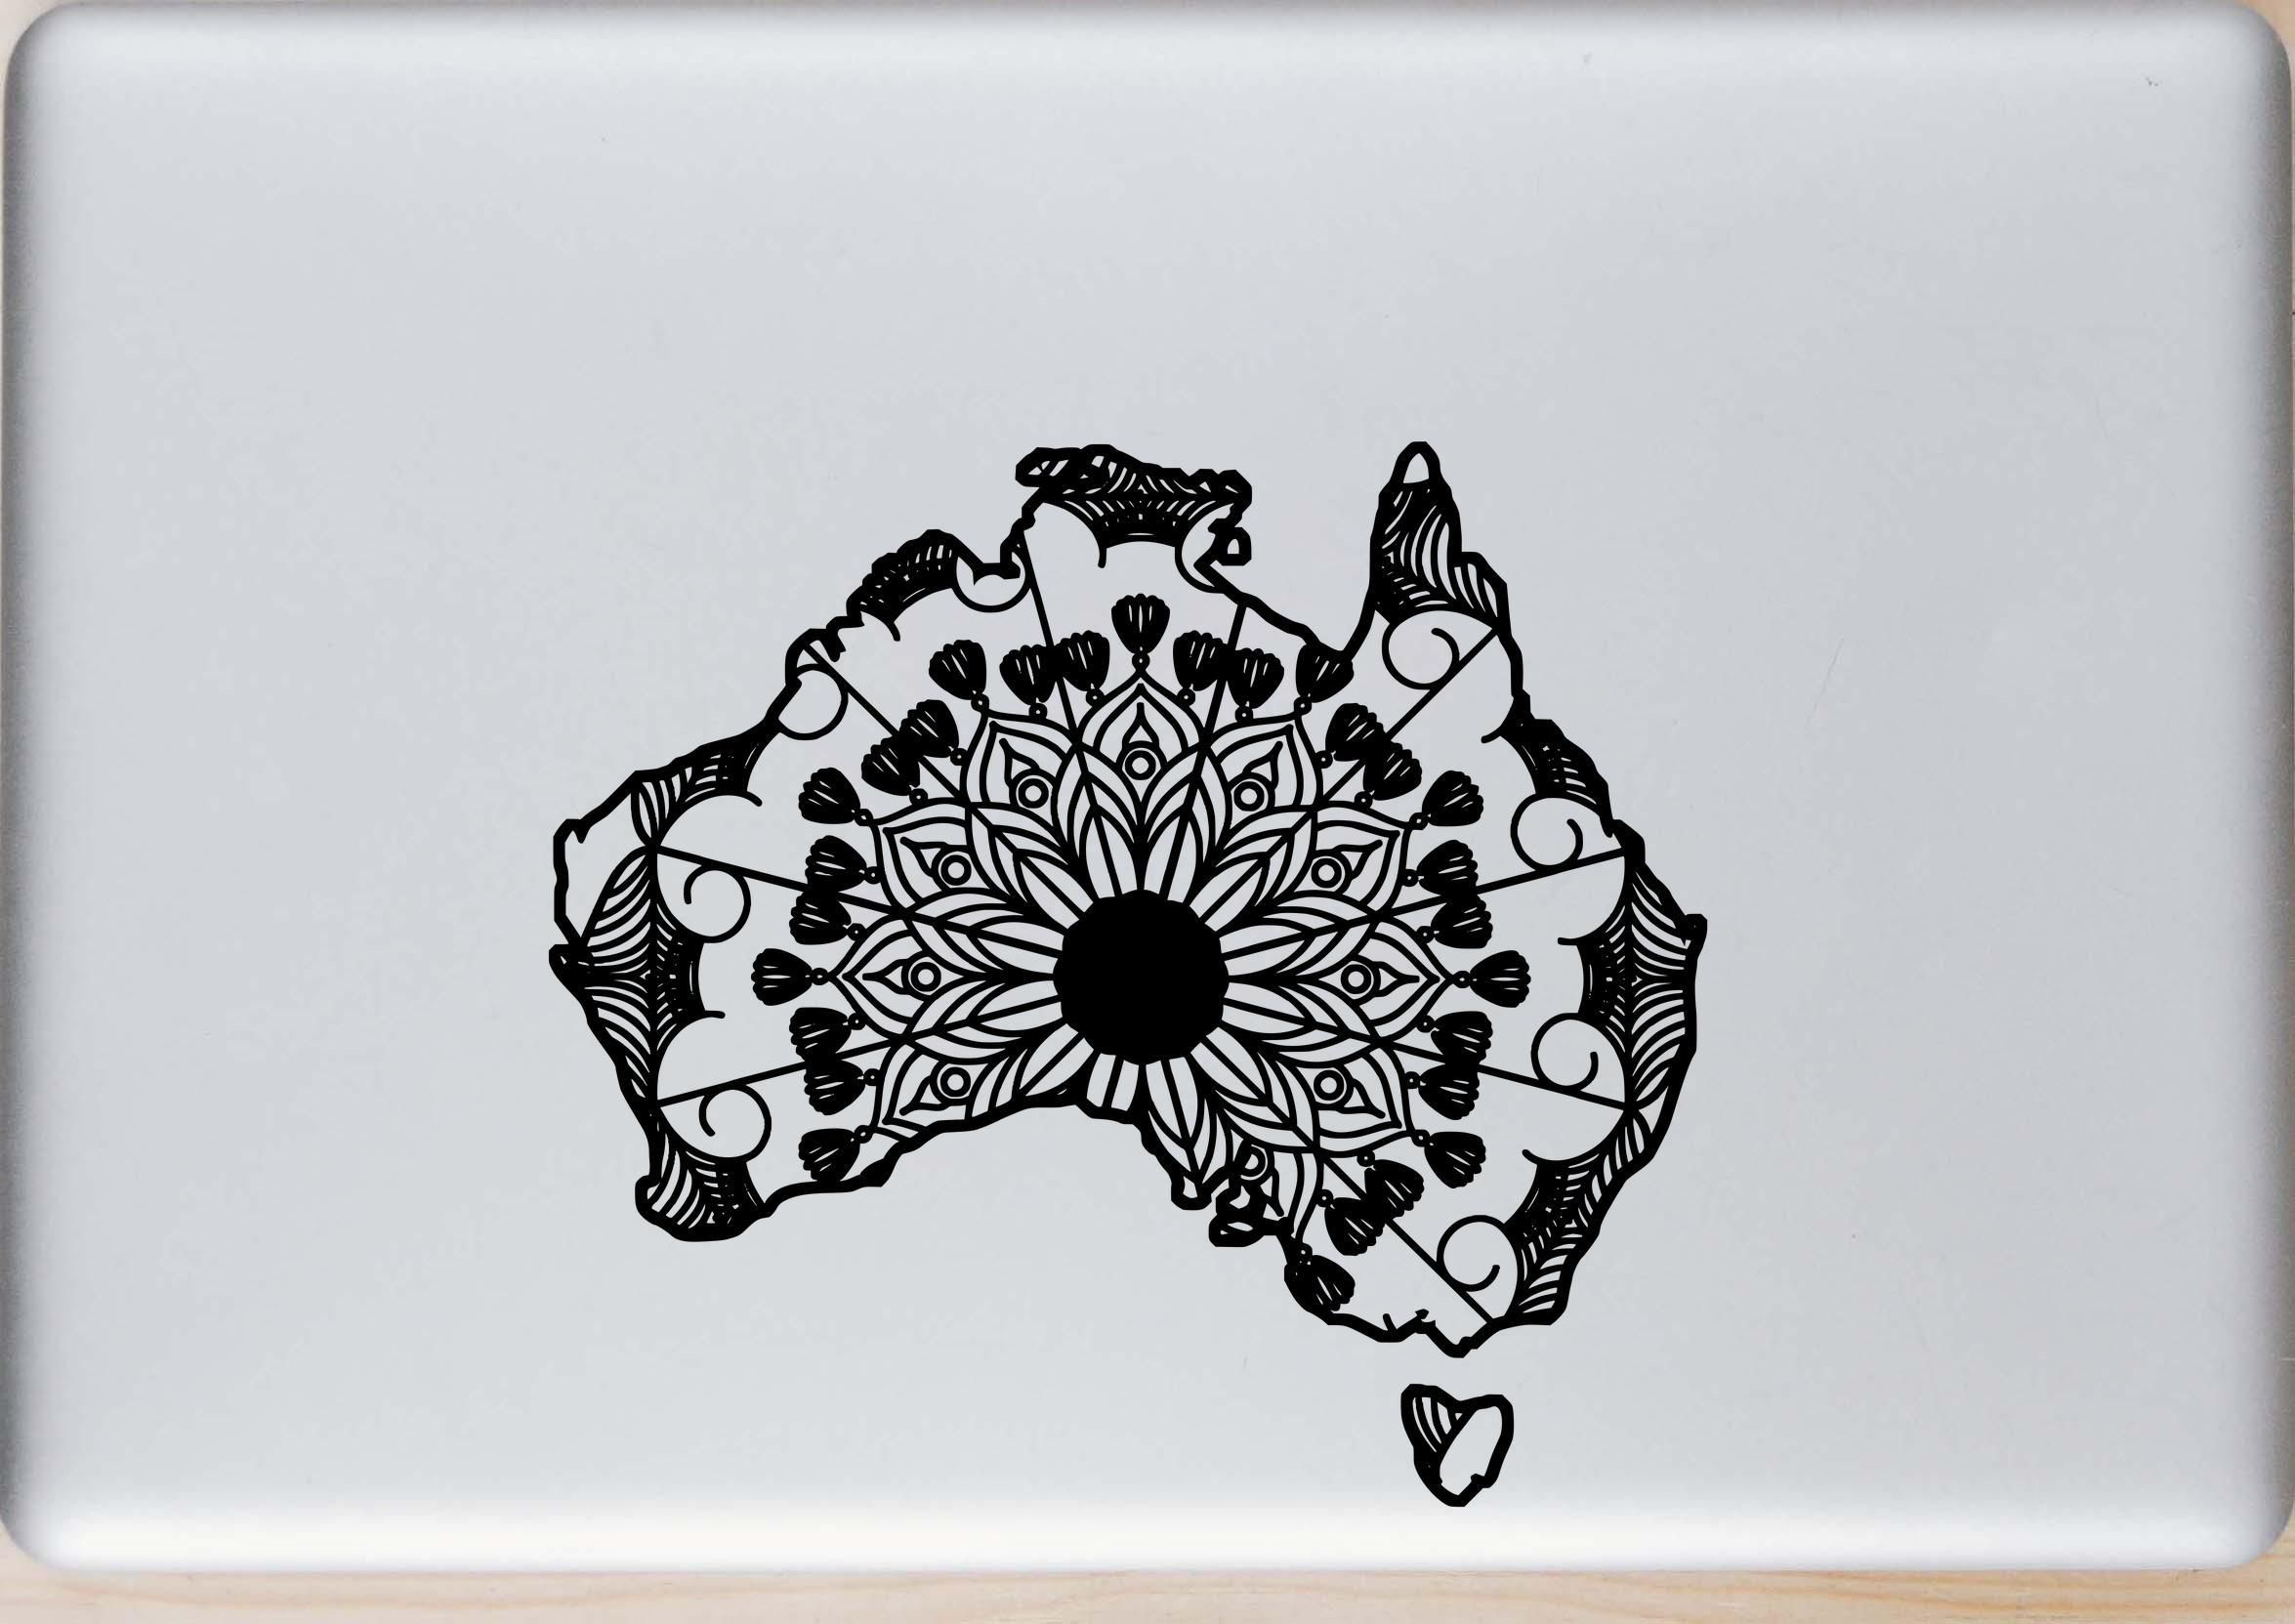 Australia Map Svg.Australia Map Mandala Animal Svg T Shirt Designs Projects To Try